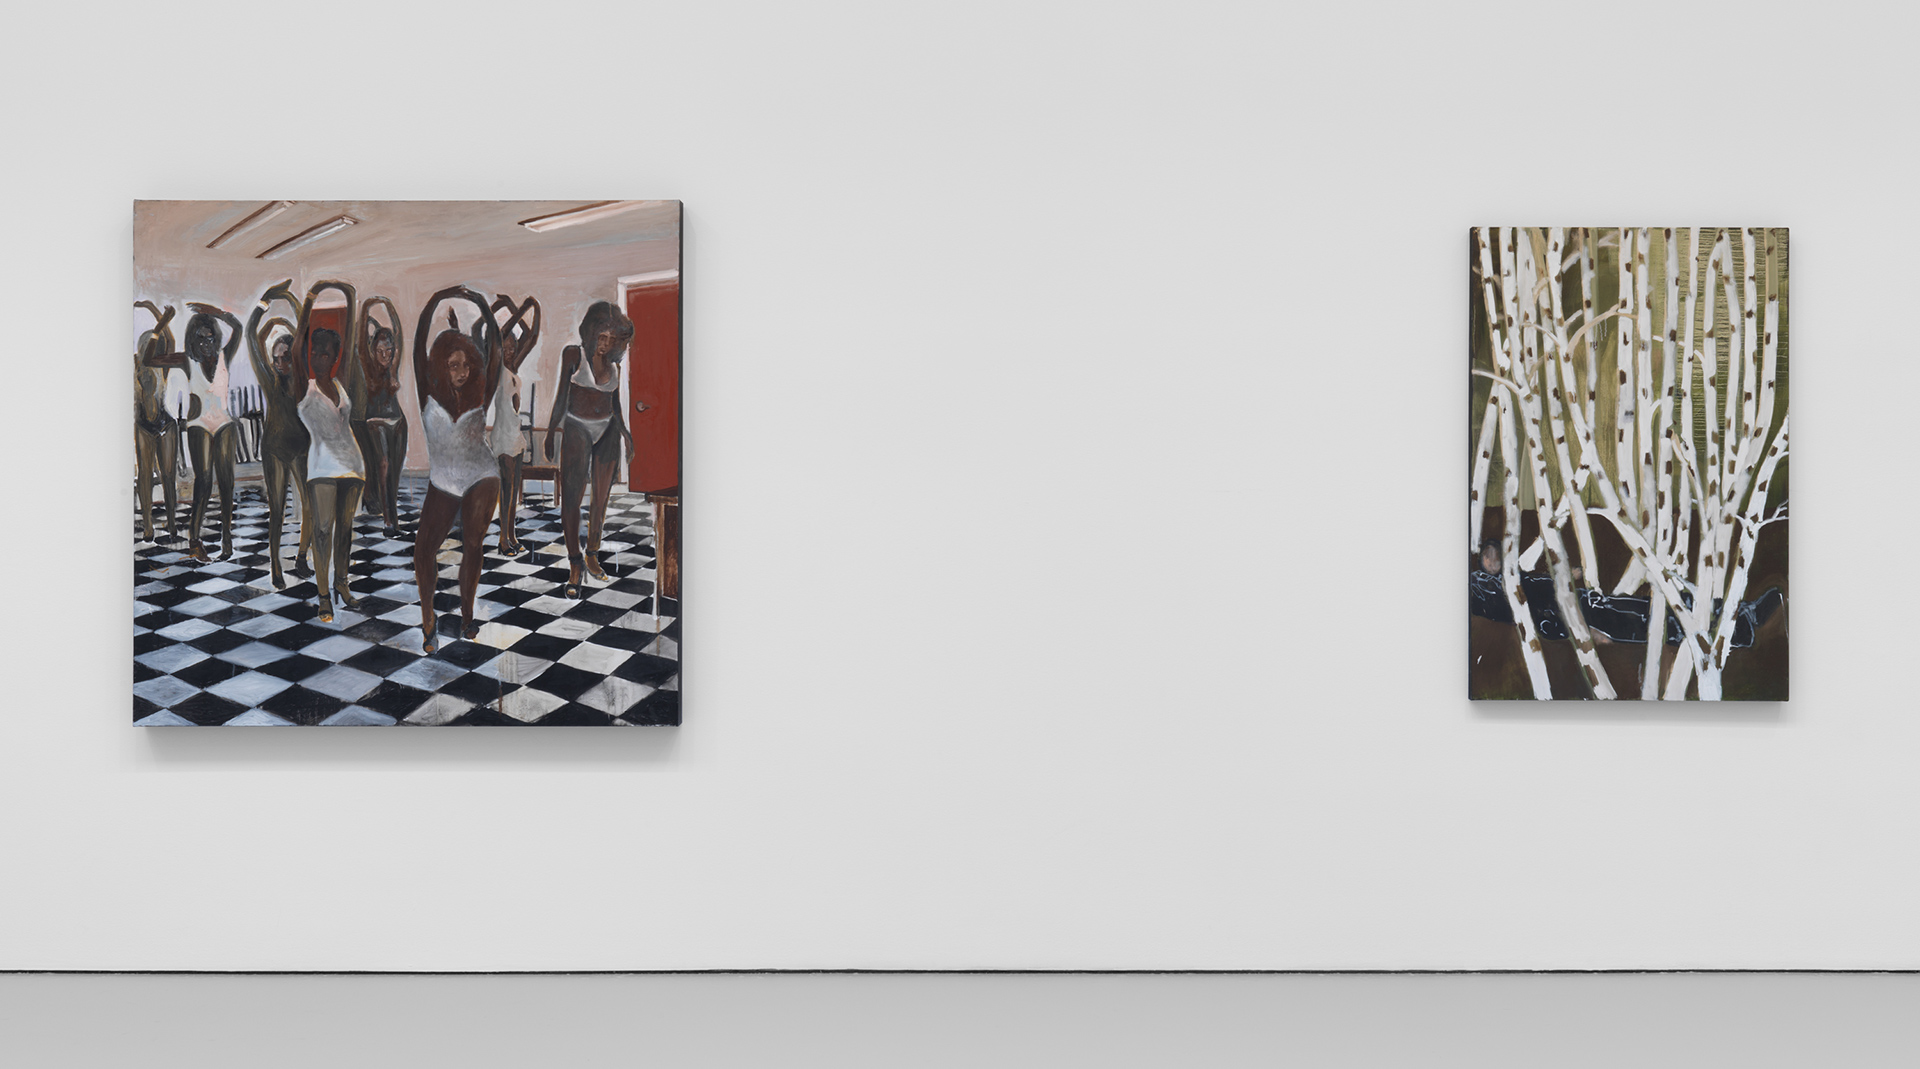 An installation view of the show Noah Davis at David Zwirner, New York, in 2020.